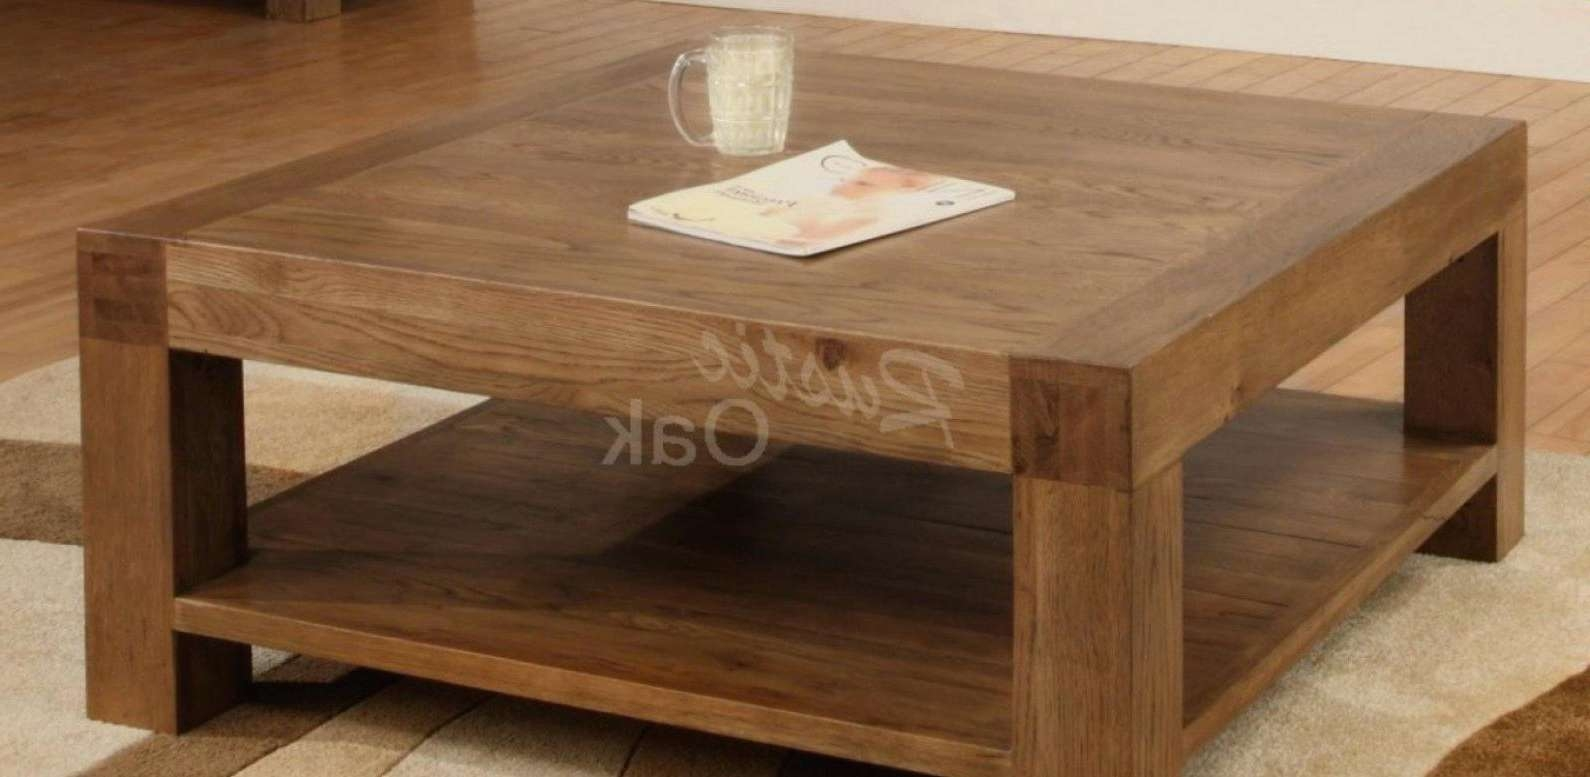 Coffee Tables : Oval Wood Coffee Table Elegant Ideas Of Metal With Regard To Most Recent Chunky Coffee Tables (View 6 of 20)